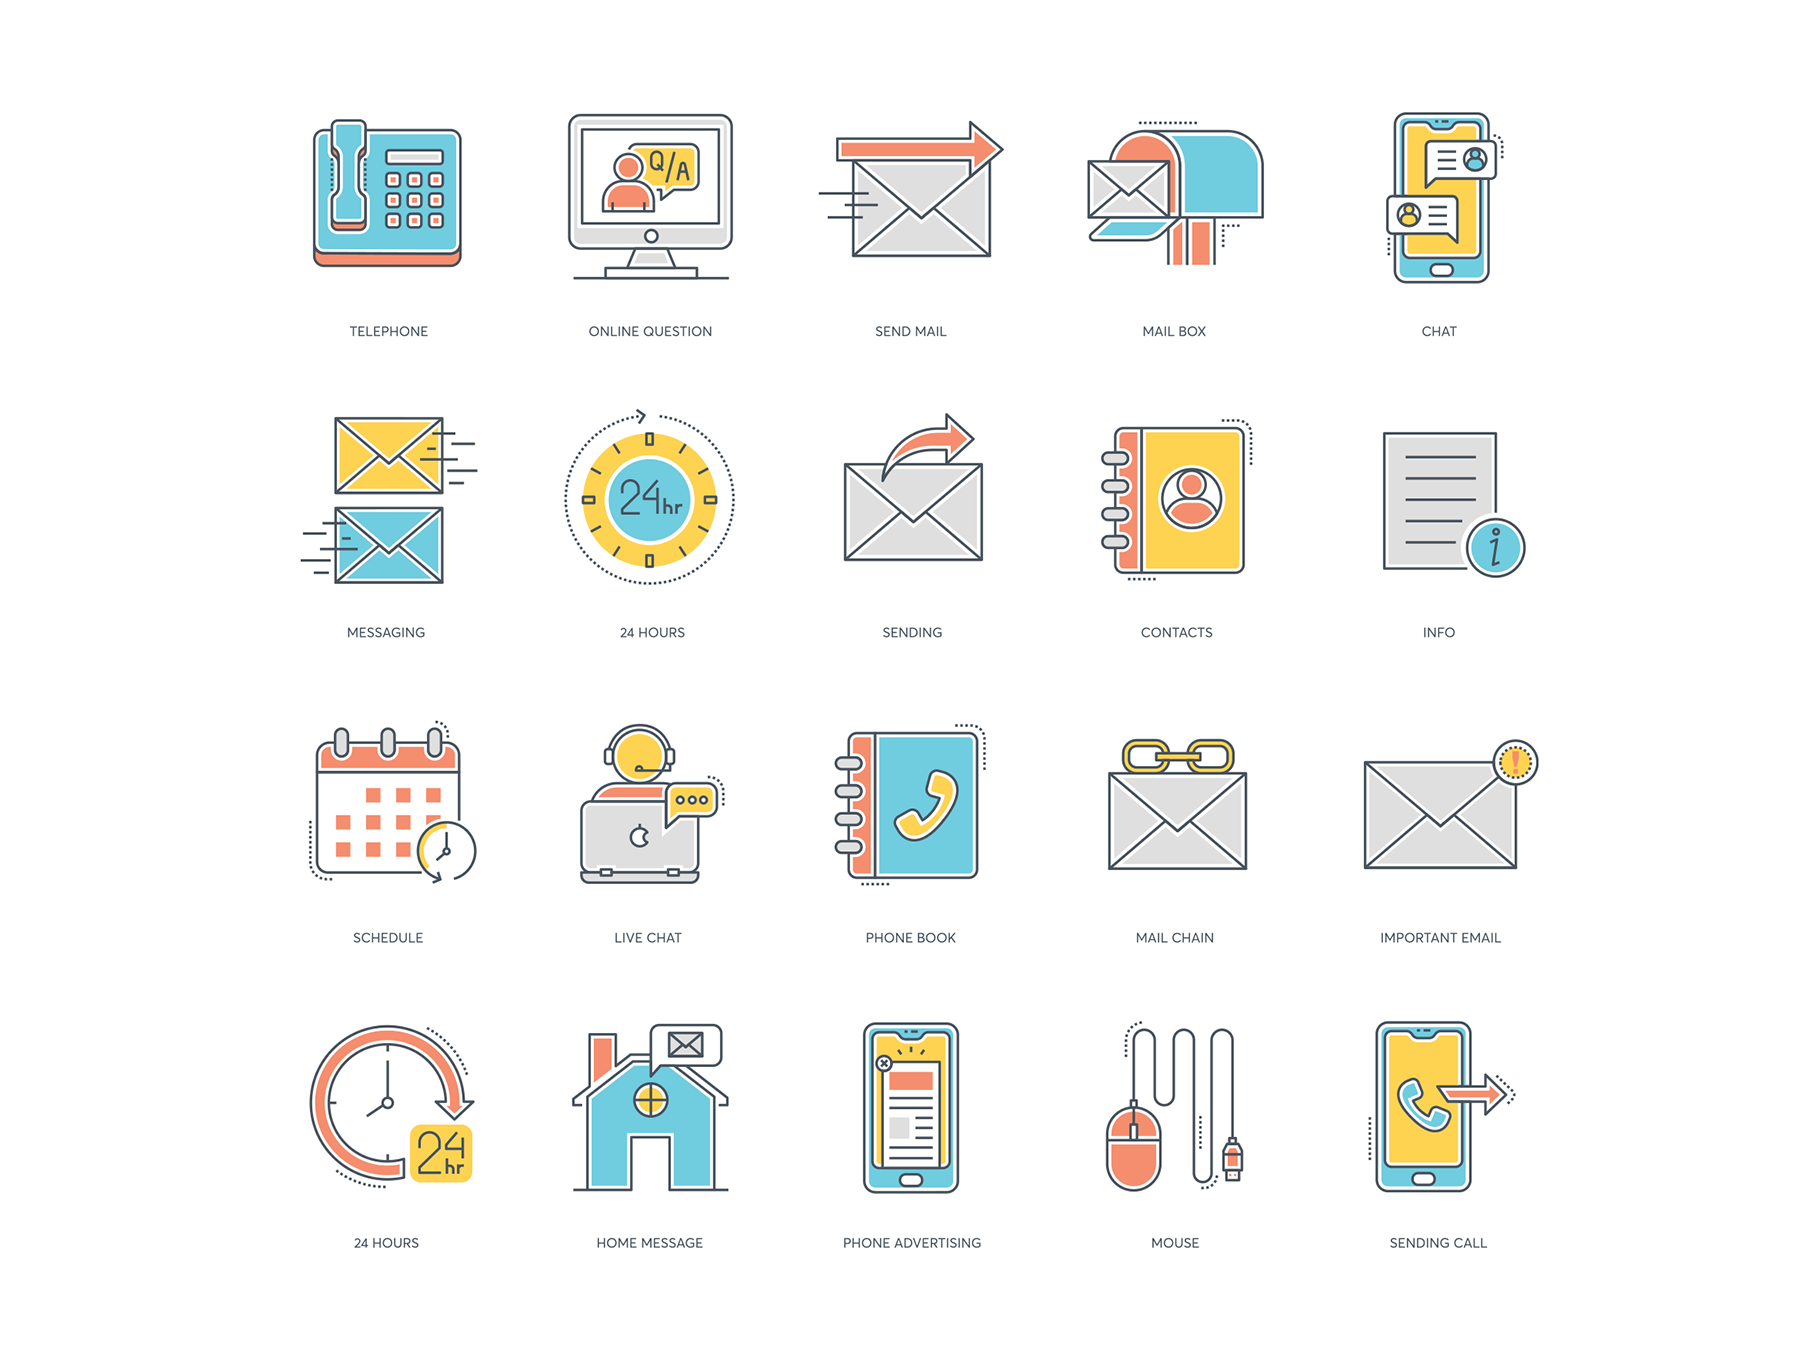 contact-us-icons-ui8-3_1544760898723.png